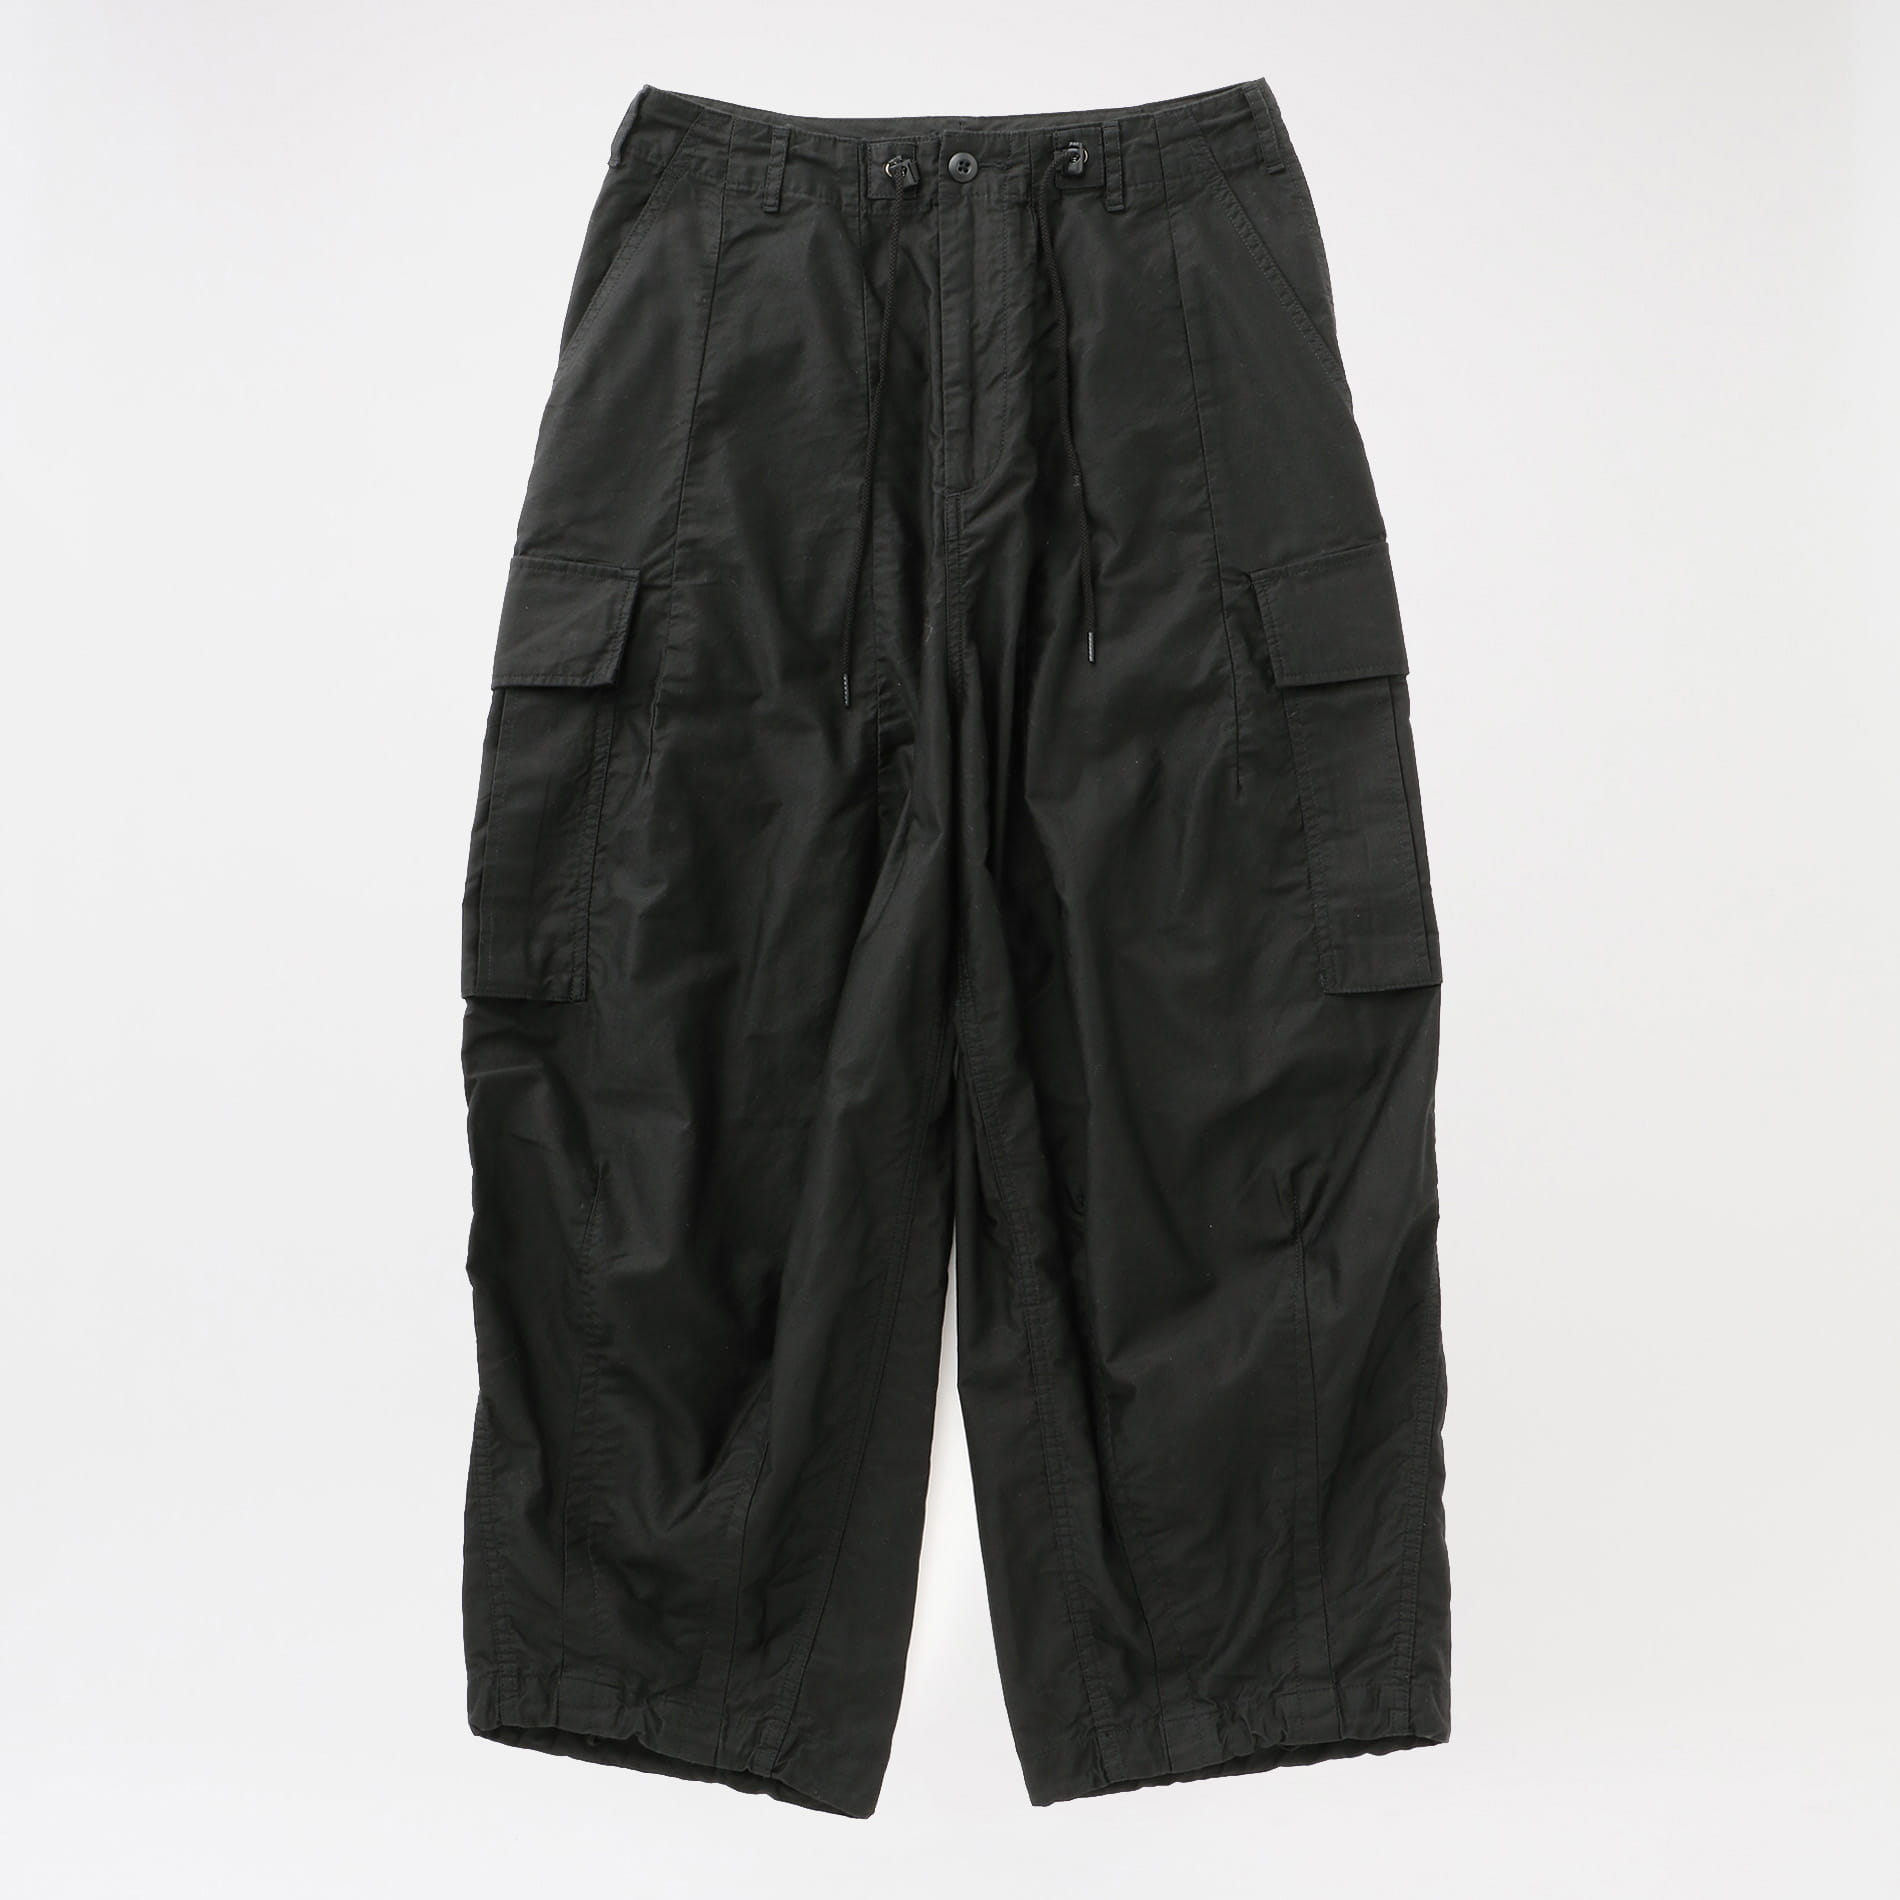 【Needles】WOMEN H.D. Pant - BDU GL182